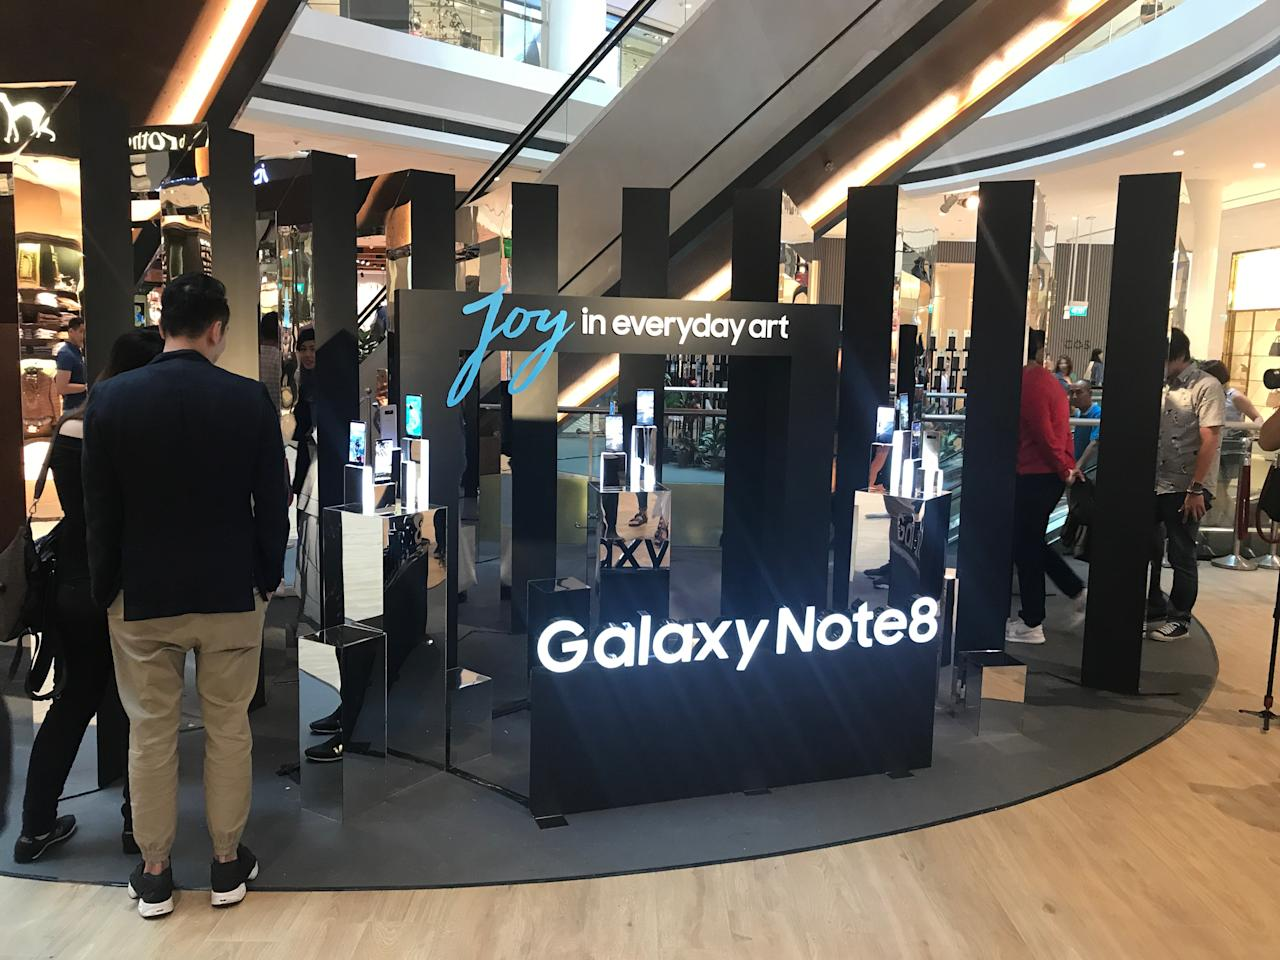 <p>Samsung digital art exhibition – Joy in everyday art. (Photo: Yahoo Lifestyle Singapore) </p>